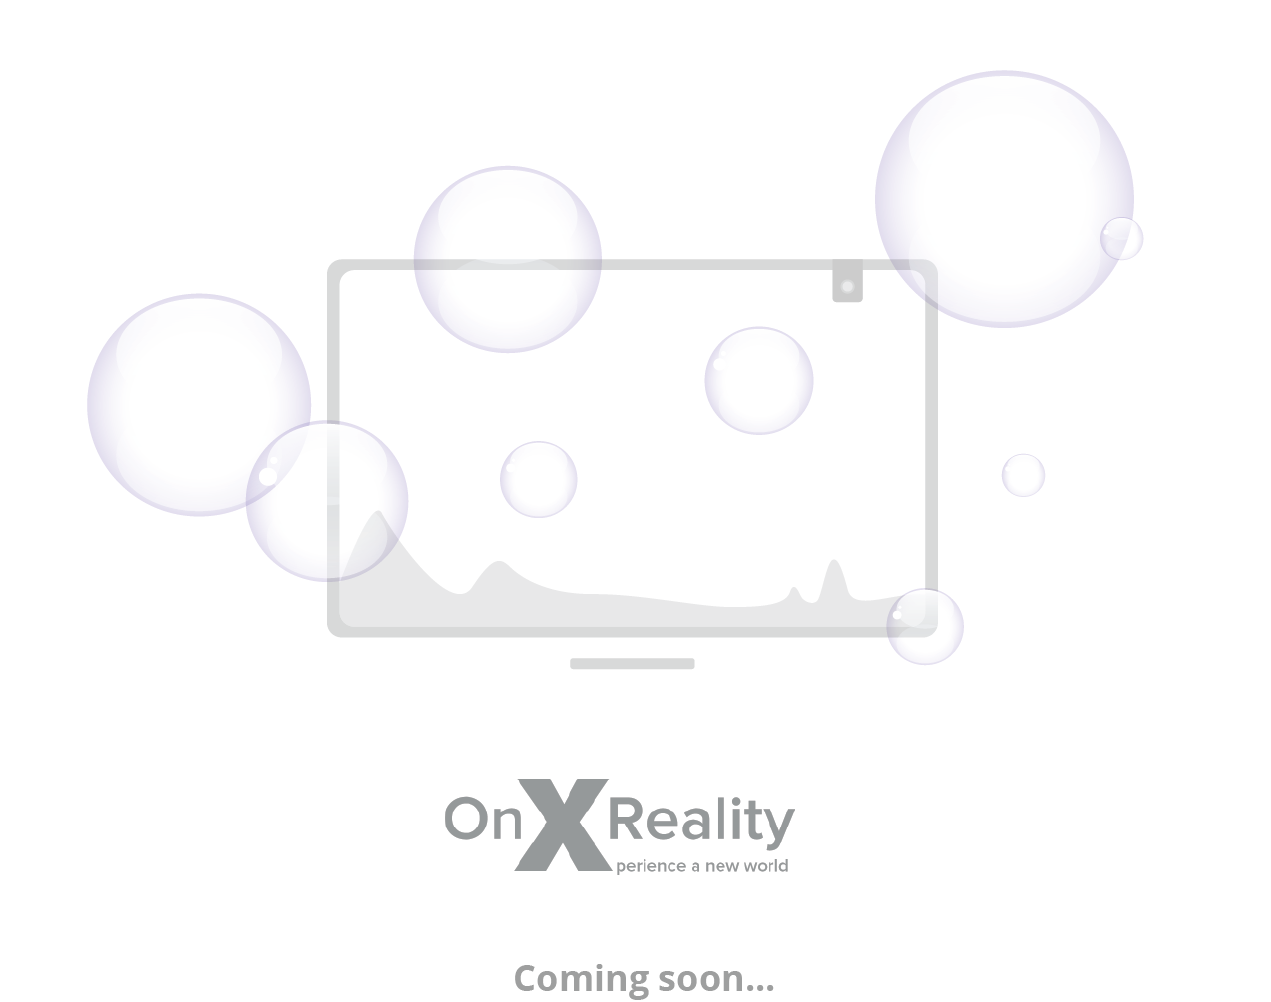 OnXReality coming soon